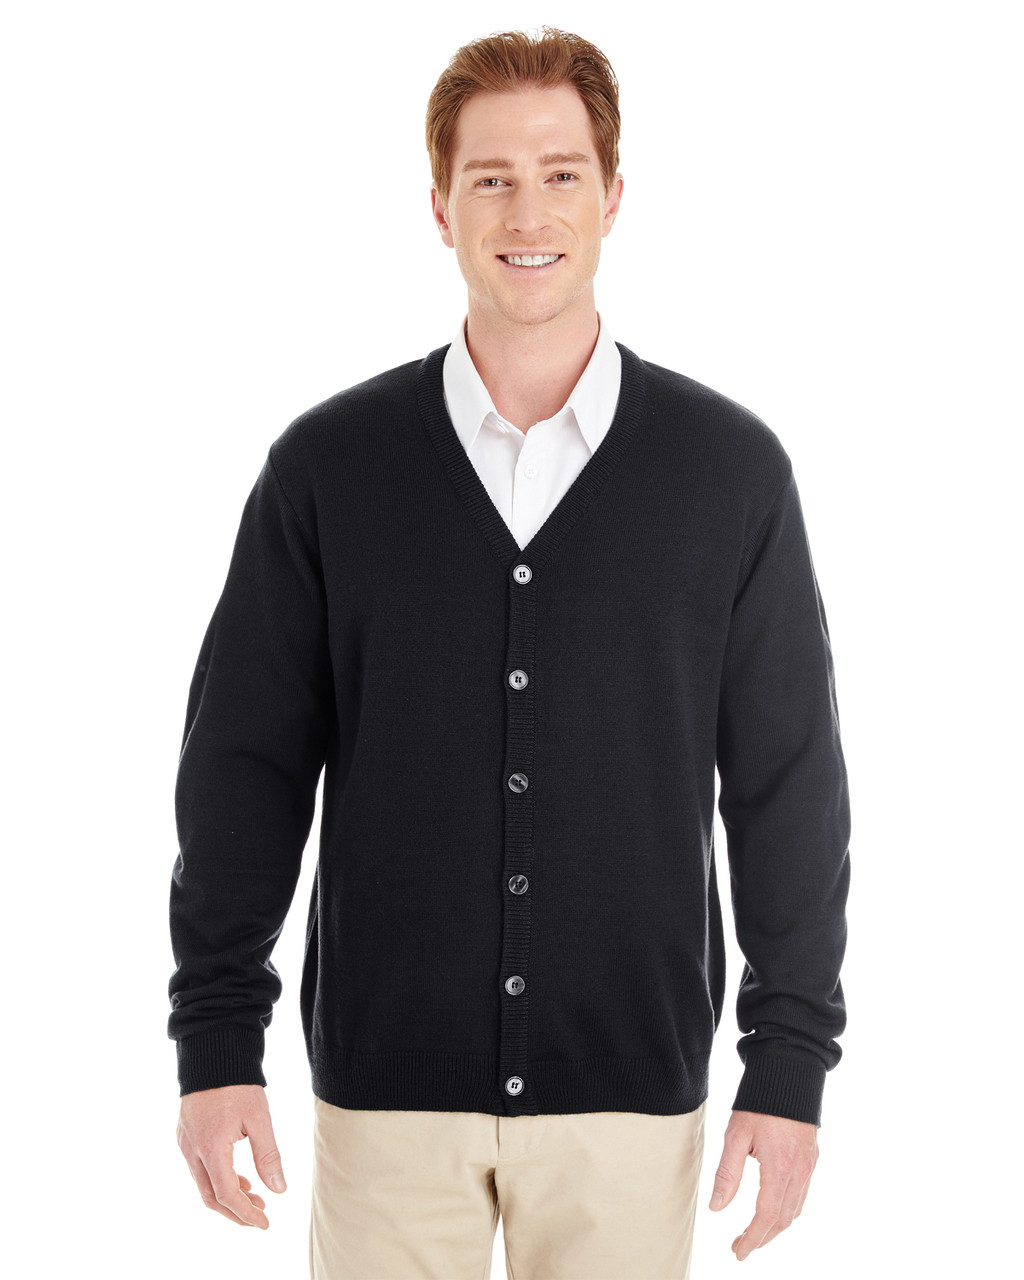 Black - M425 Harriton Men's Pilbloc™ V-Neck Button Cardigan Sweater